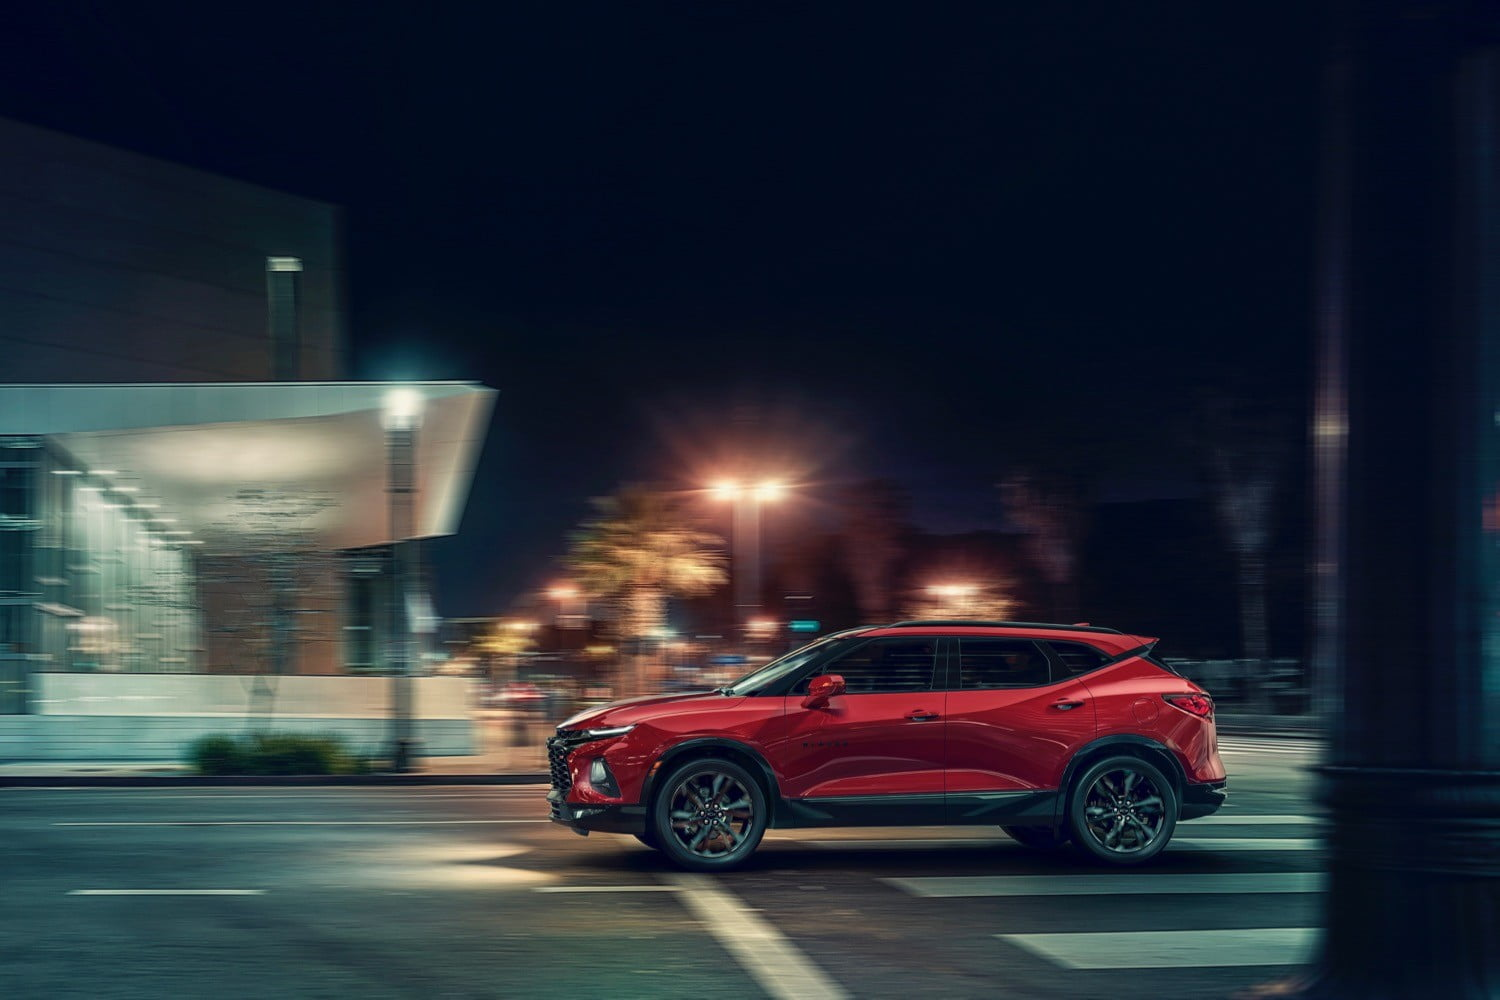 2019 Chevrolet Blazer strays far from its rugged roots